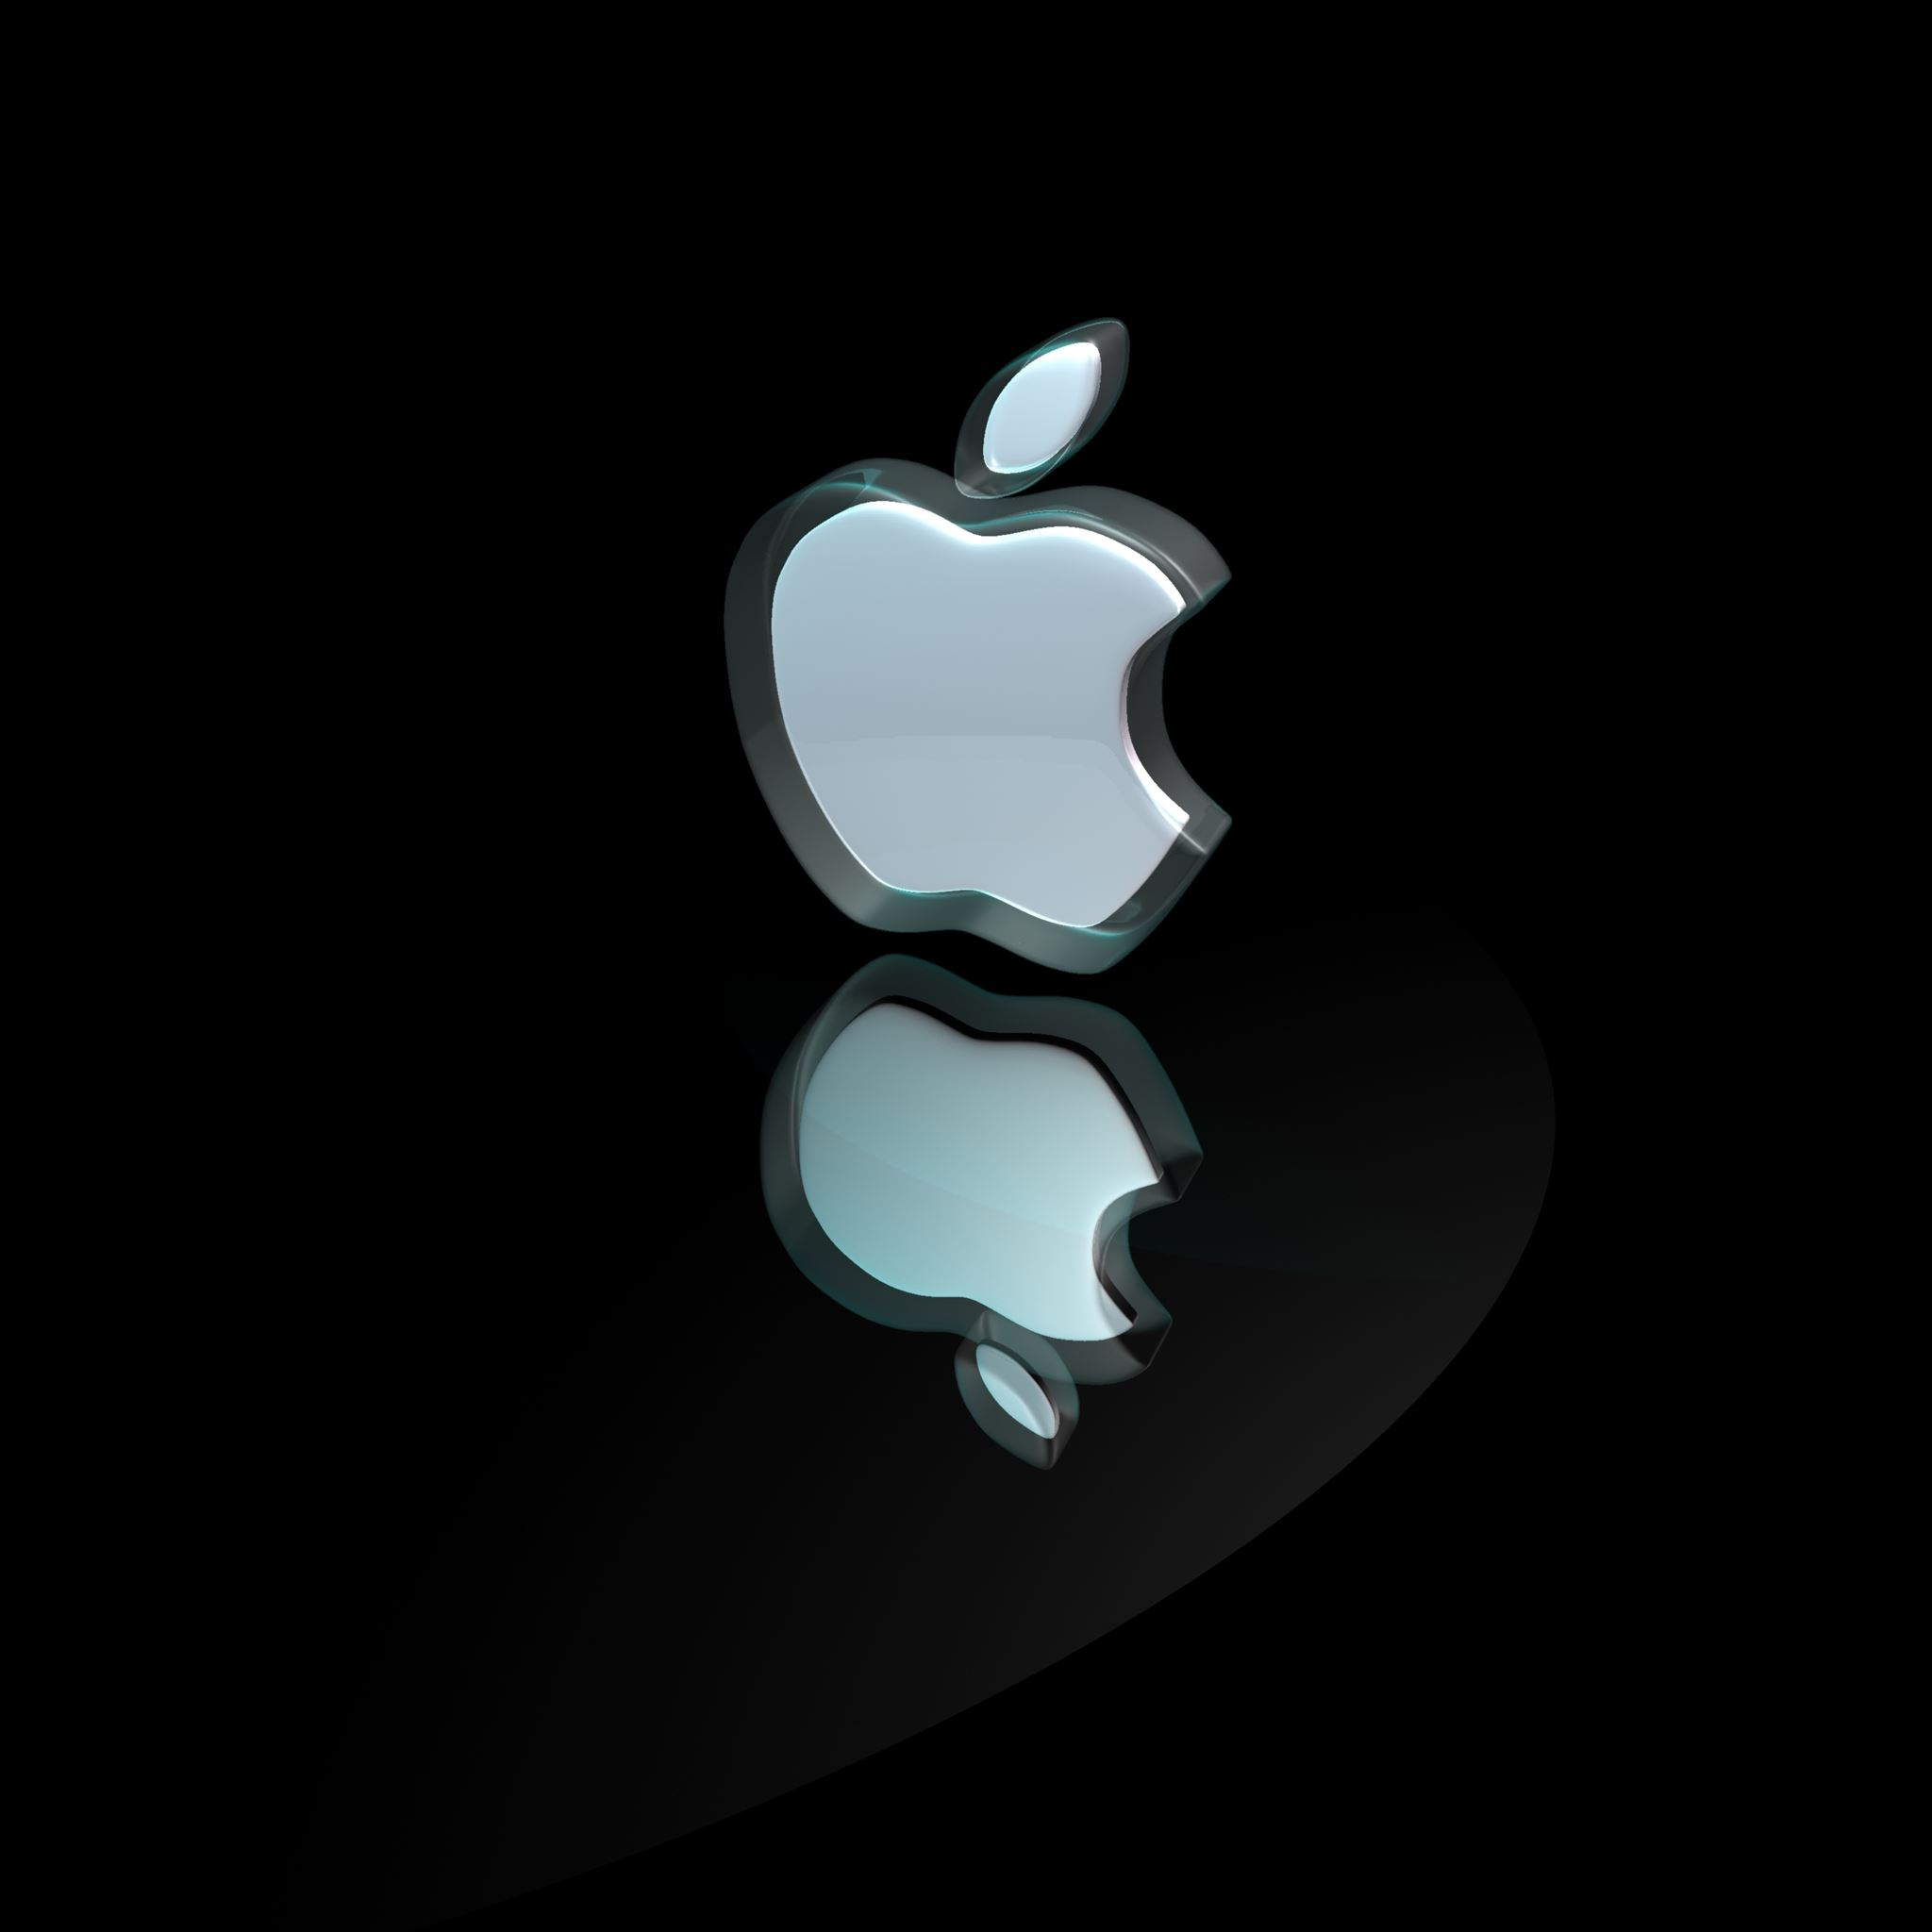 3D Apple Logo ipad air wallpaper ilikewallpaper com